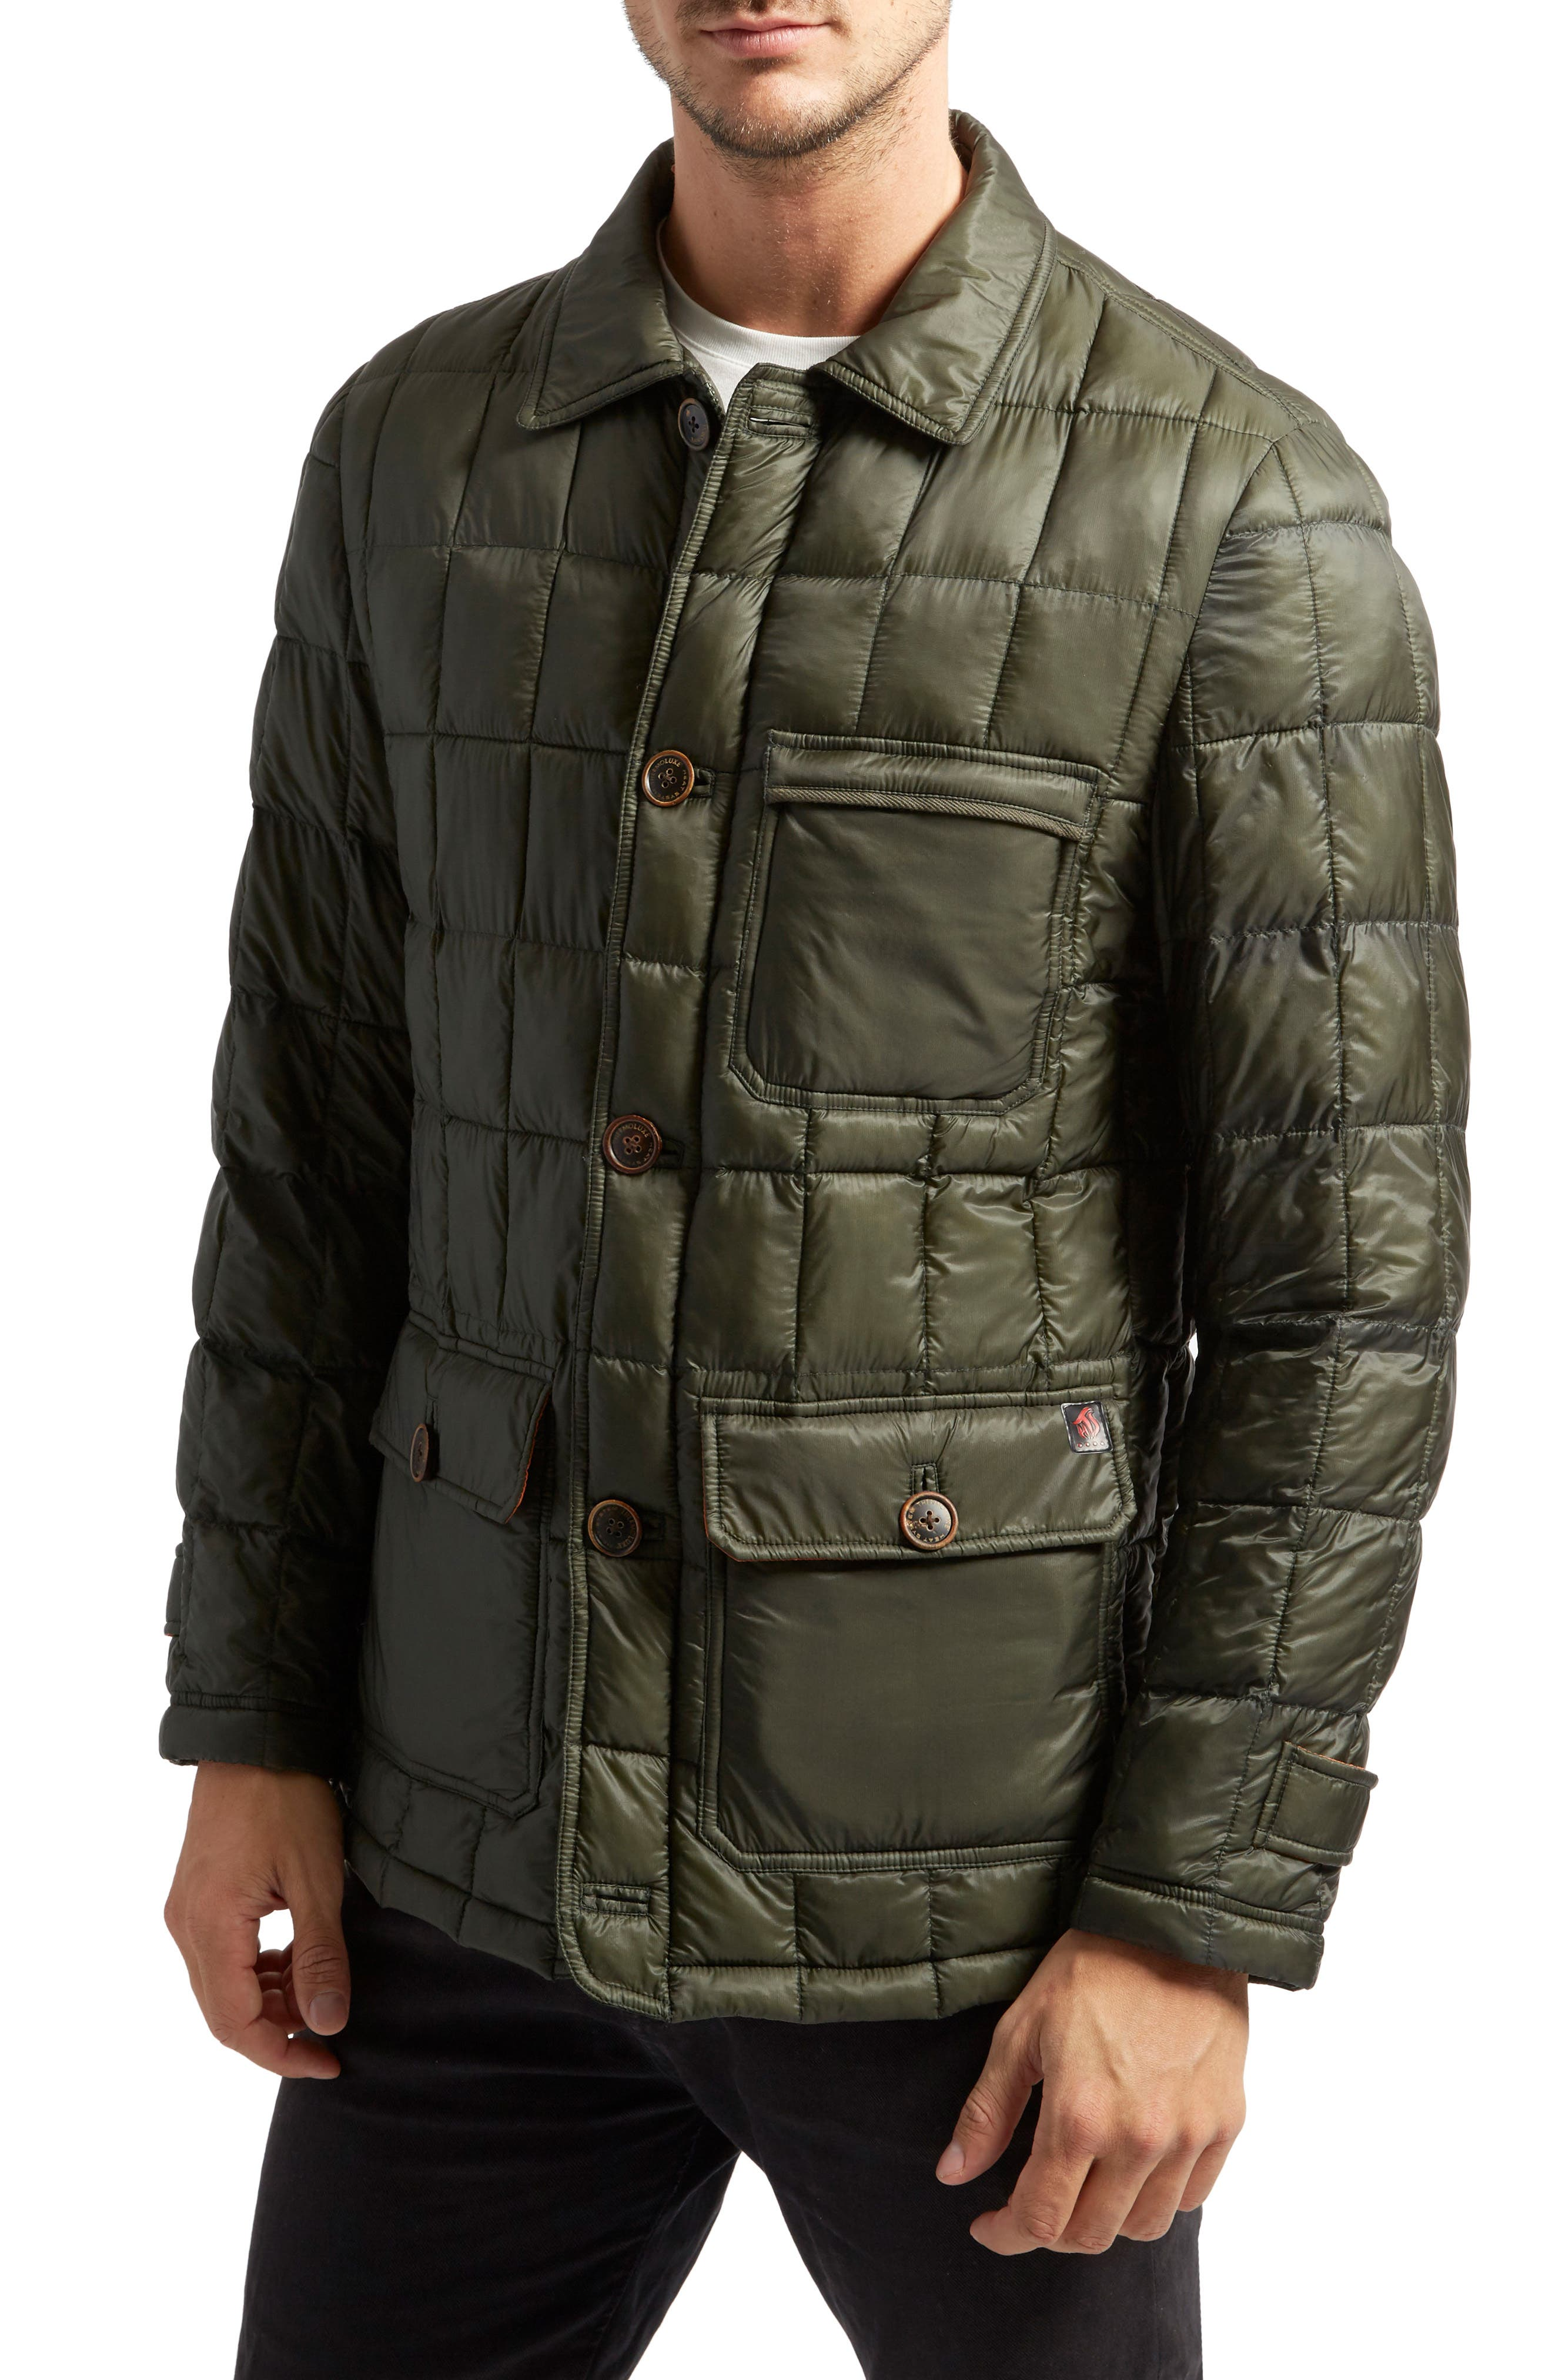 Butler Heat System Quilted Walking Jacket,                             Main thumbnail 1, color,                             Kale